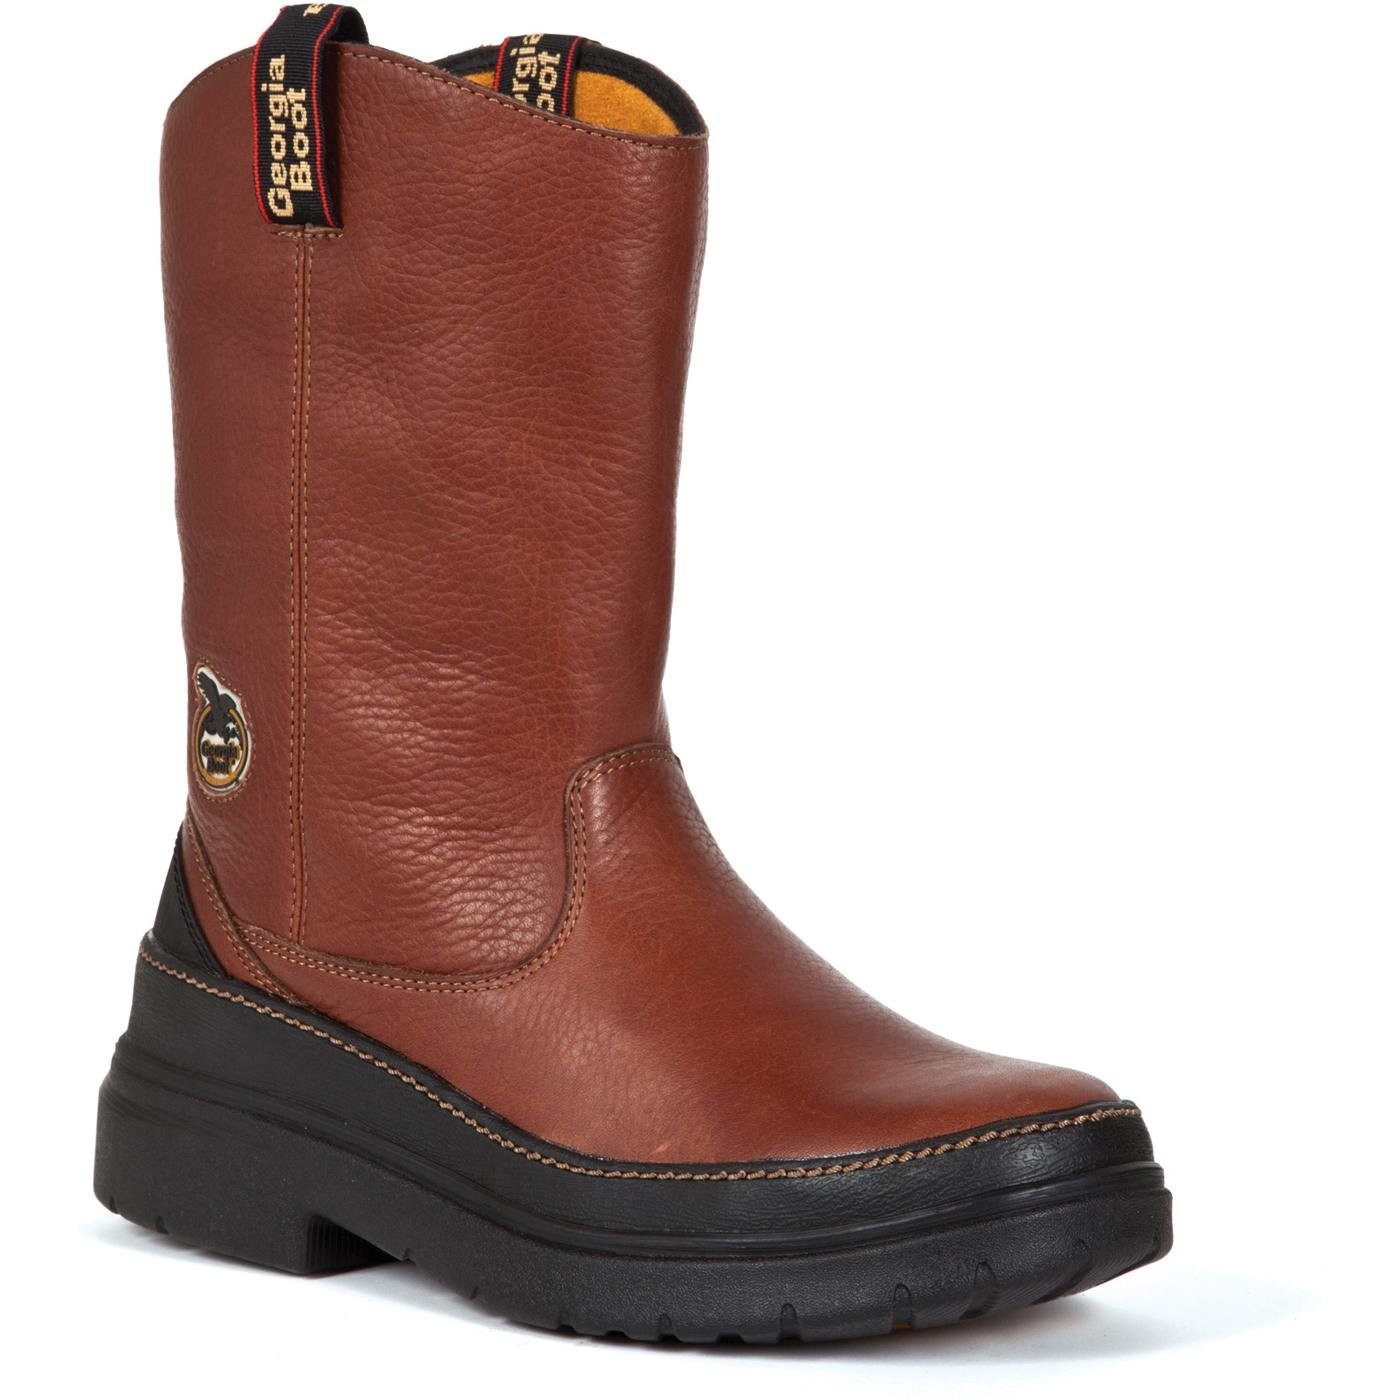 Georgia Homeland Steel-Toe EH Wellington Work Boot - Medium Brown, Size 12, Model# G5723